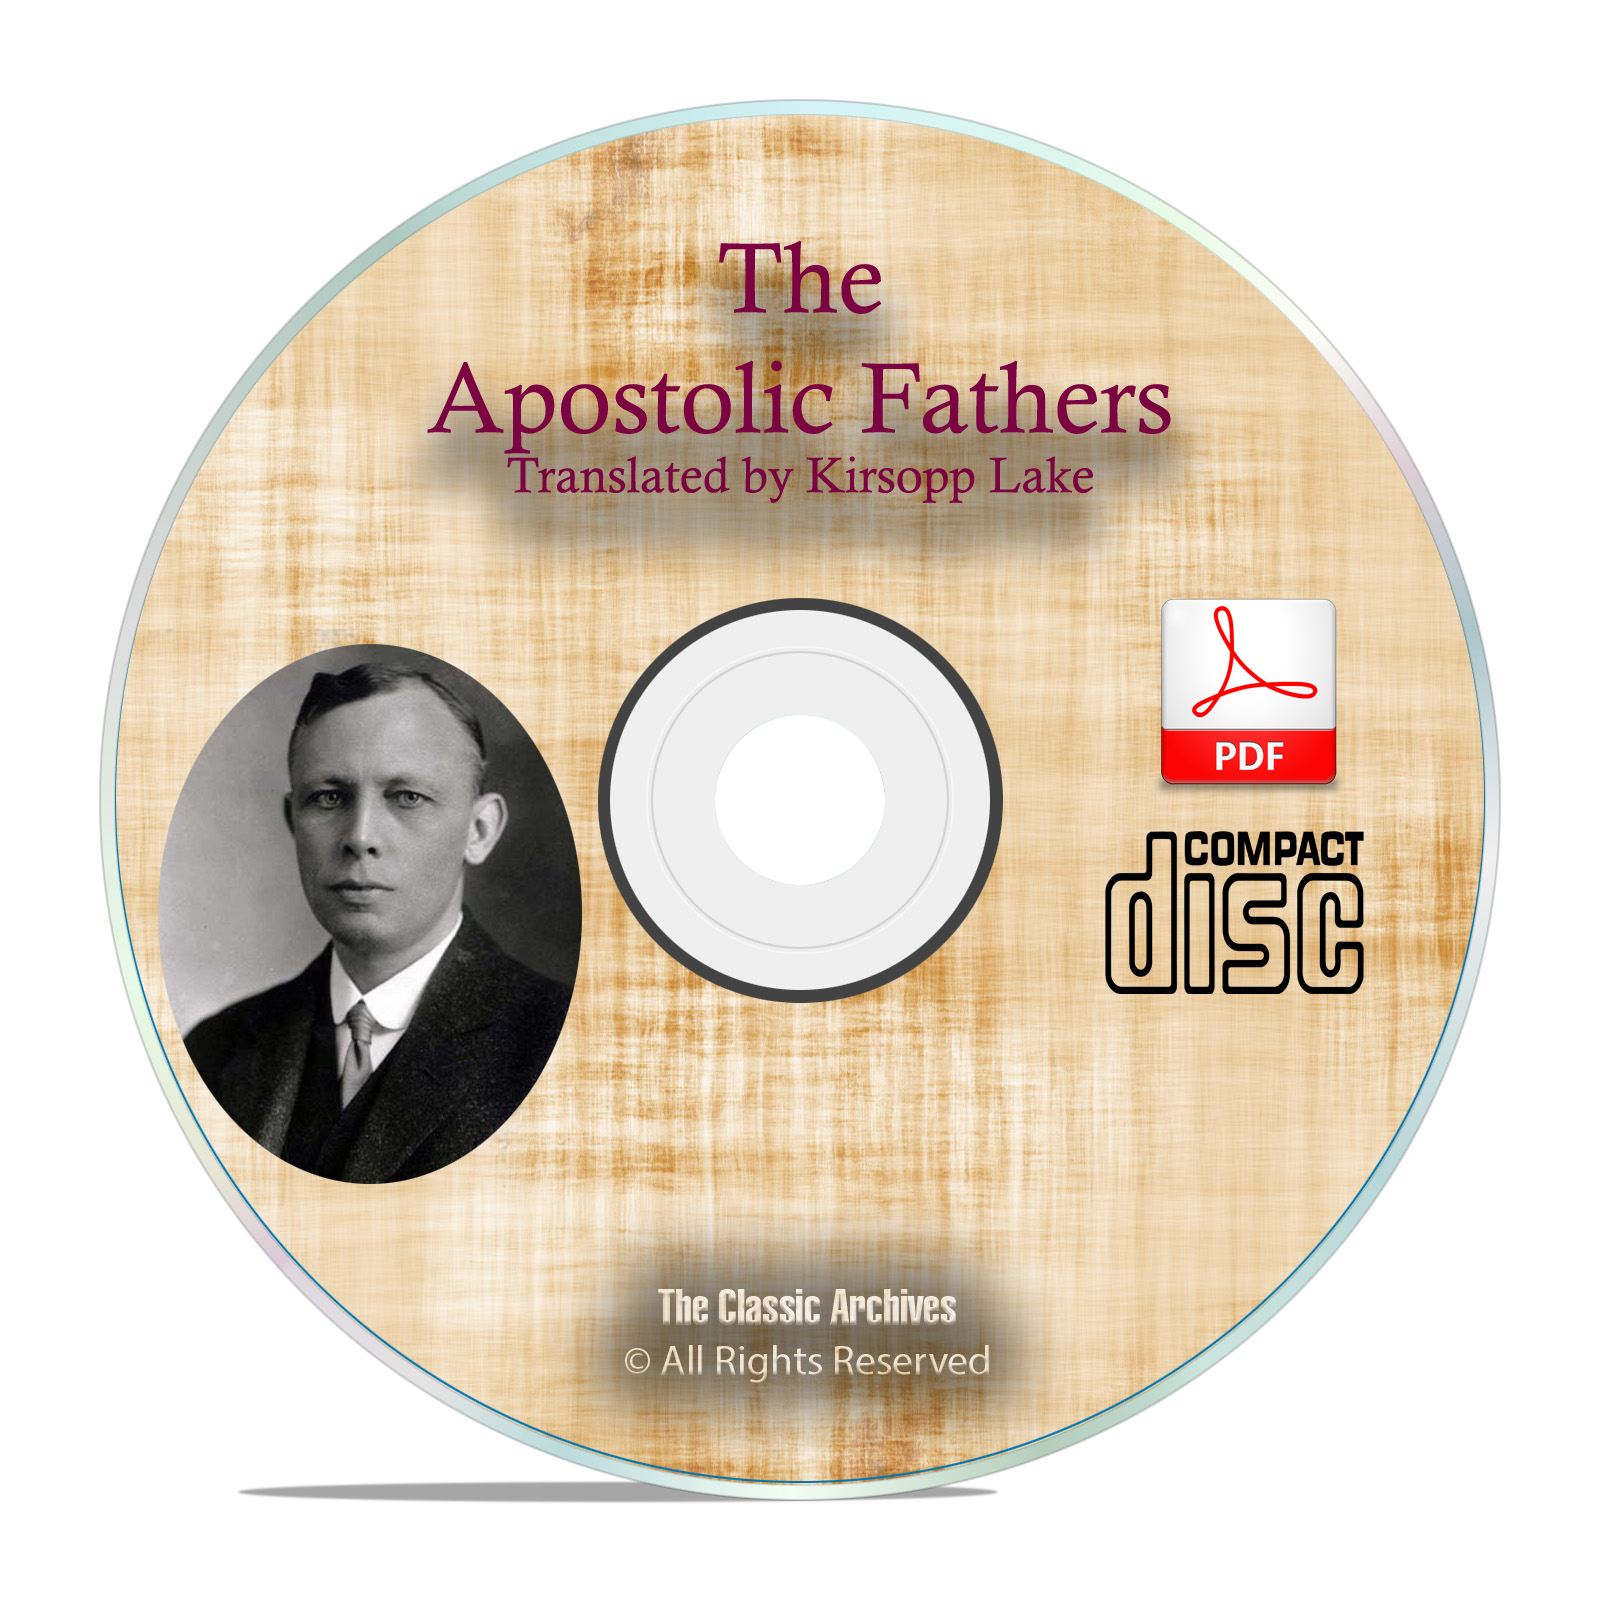 Apostolic Fathers, Kirsopp Lake, Christian Church Bible Study History PDF